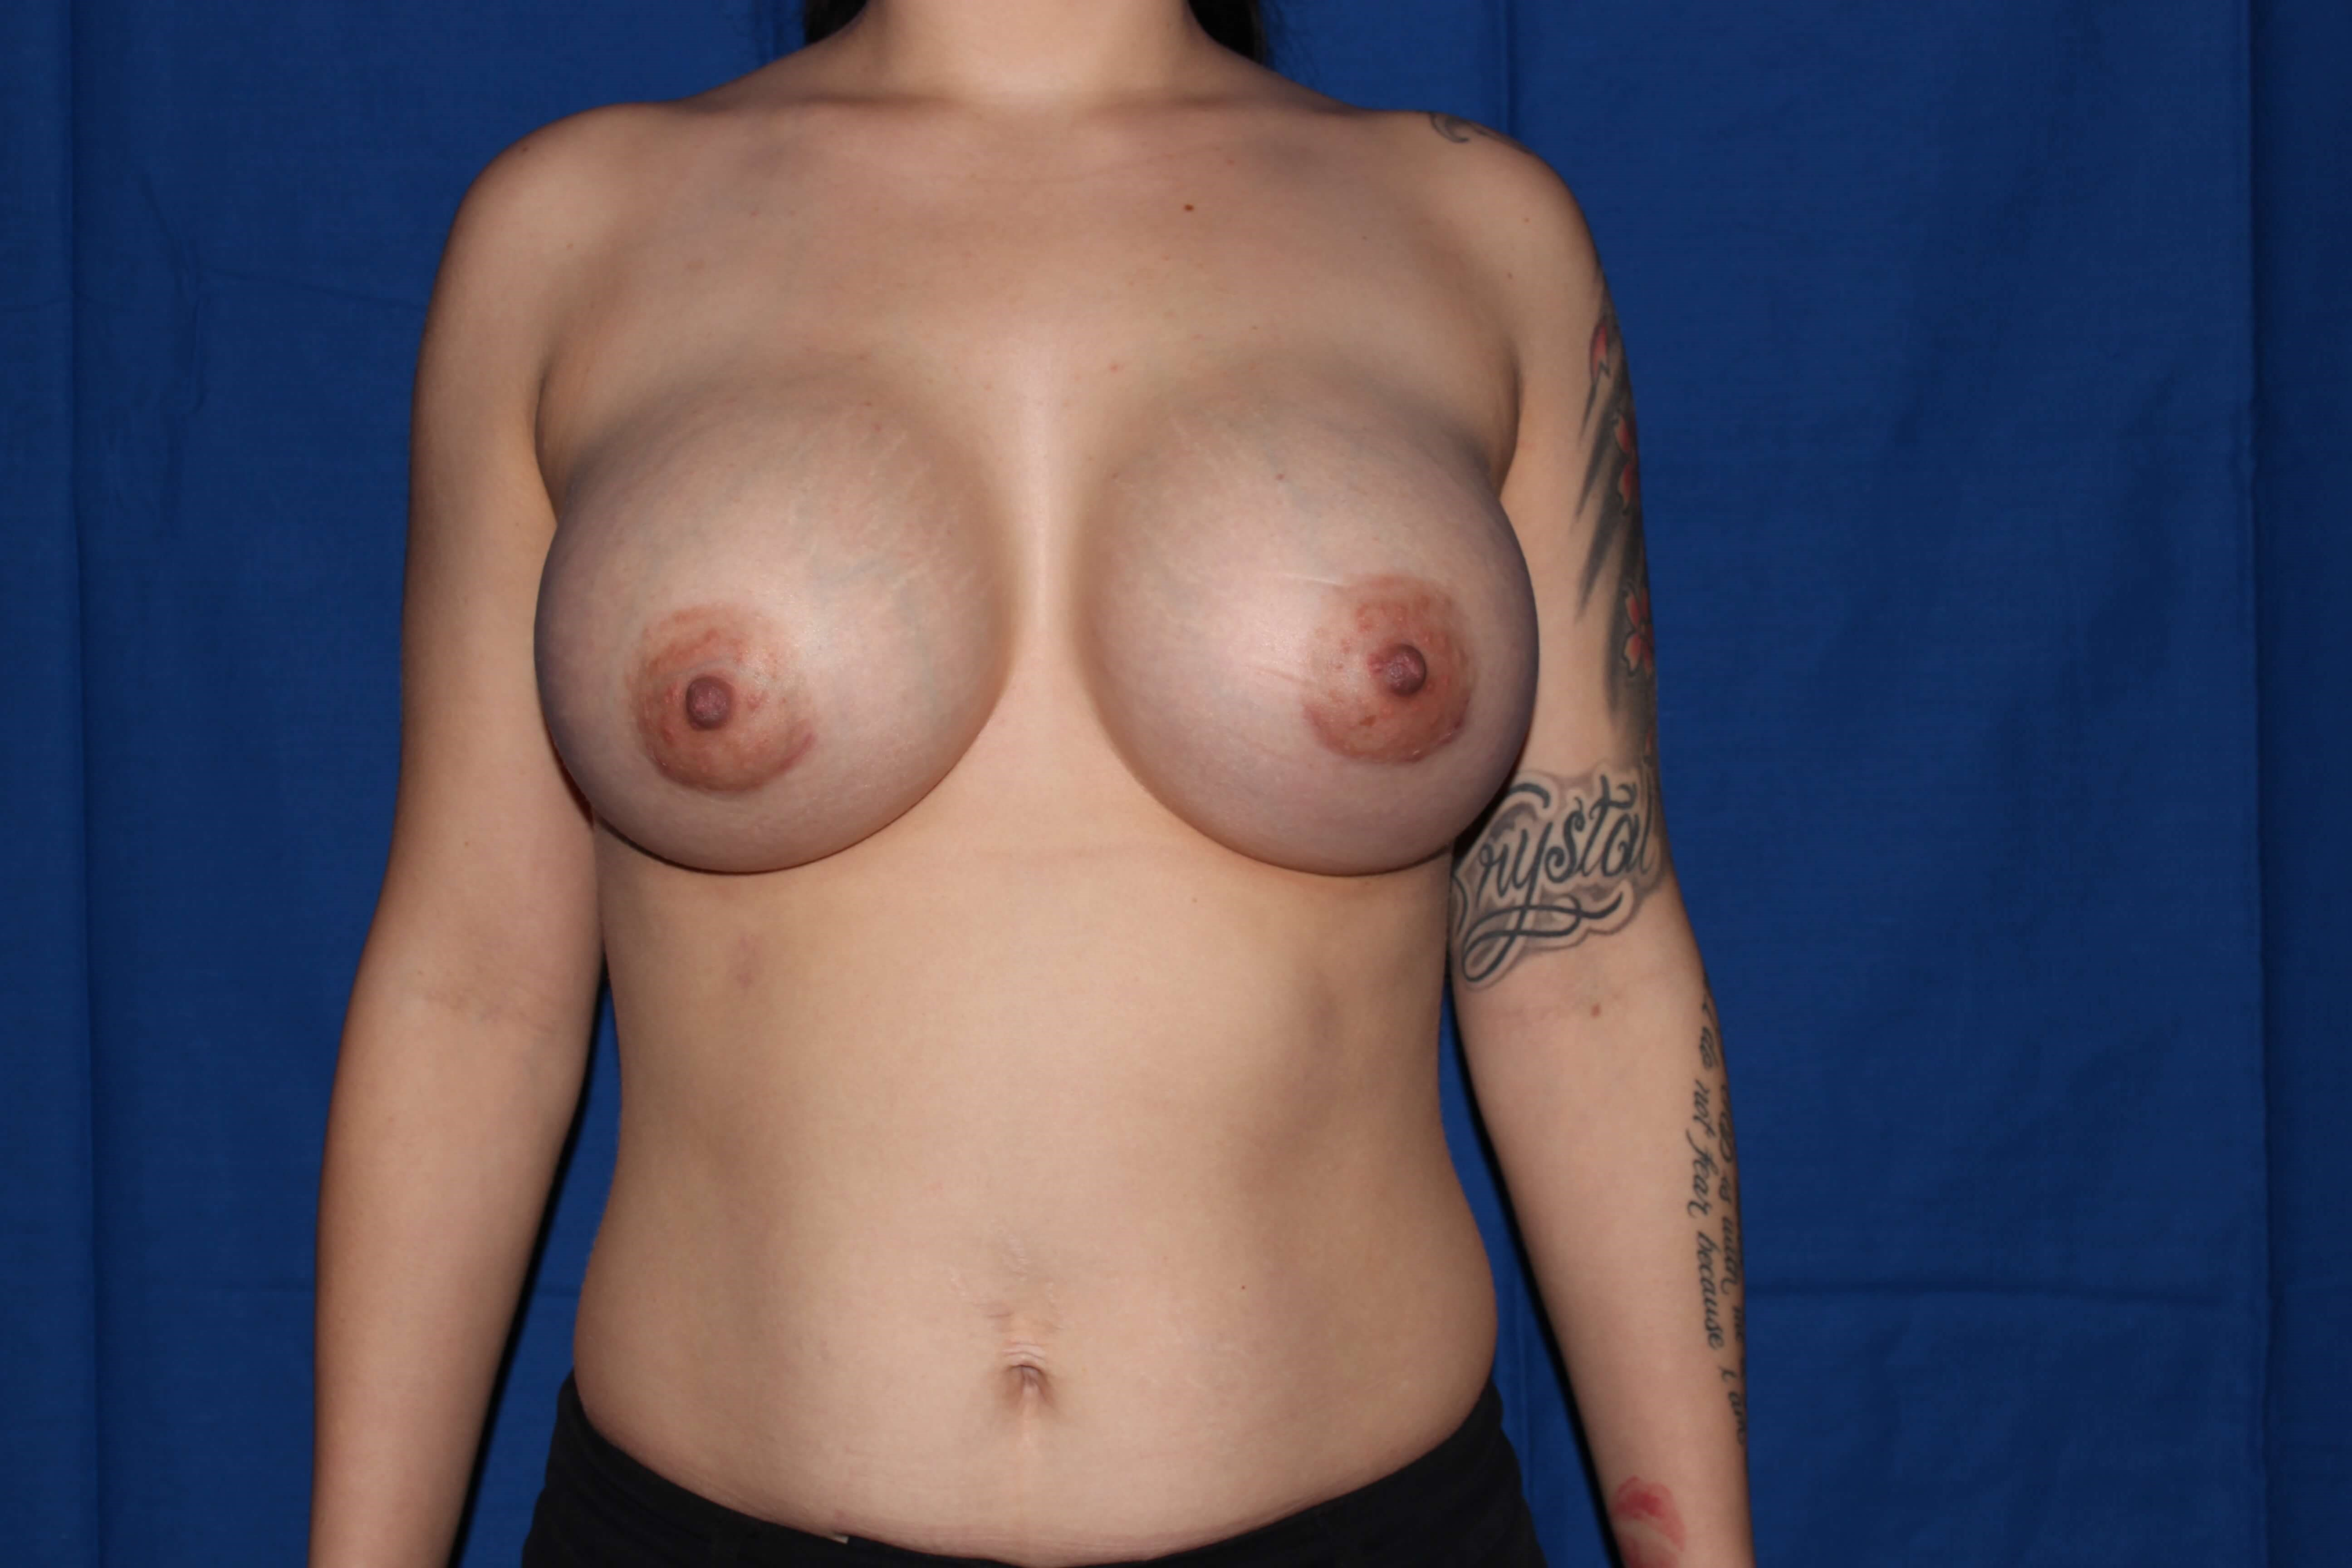 Silicone Implants After - scottsdale Breast Augmentation